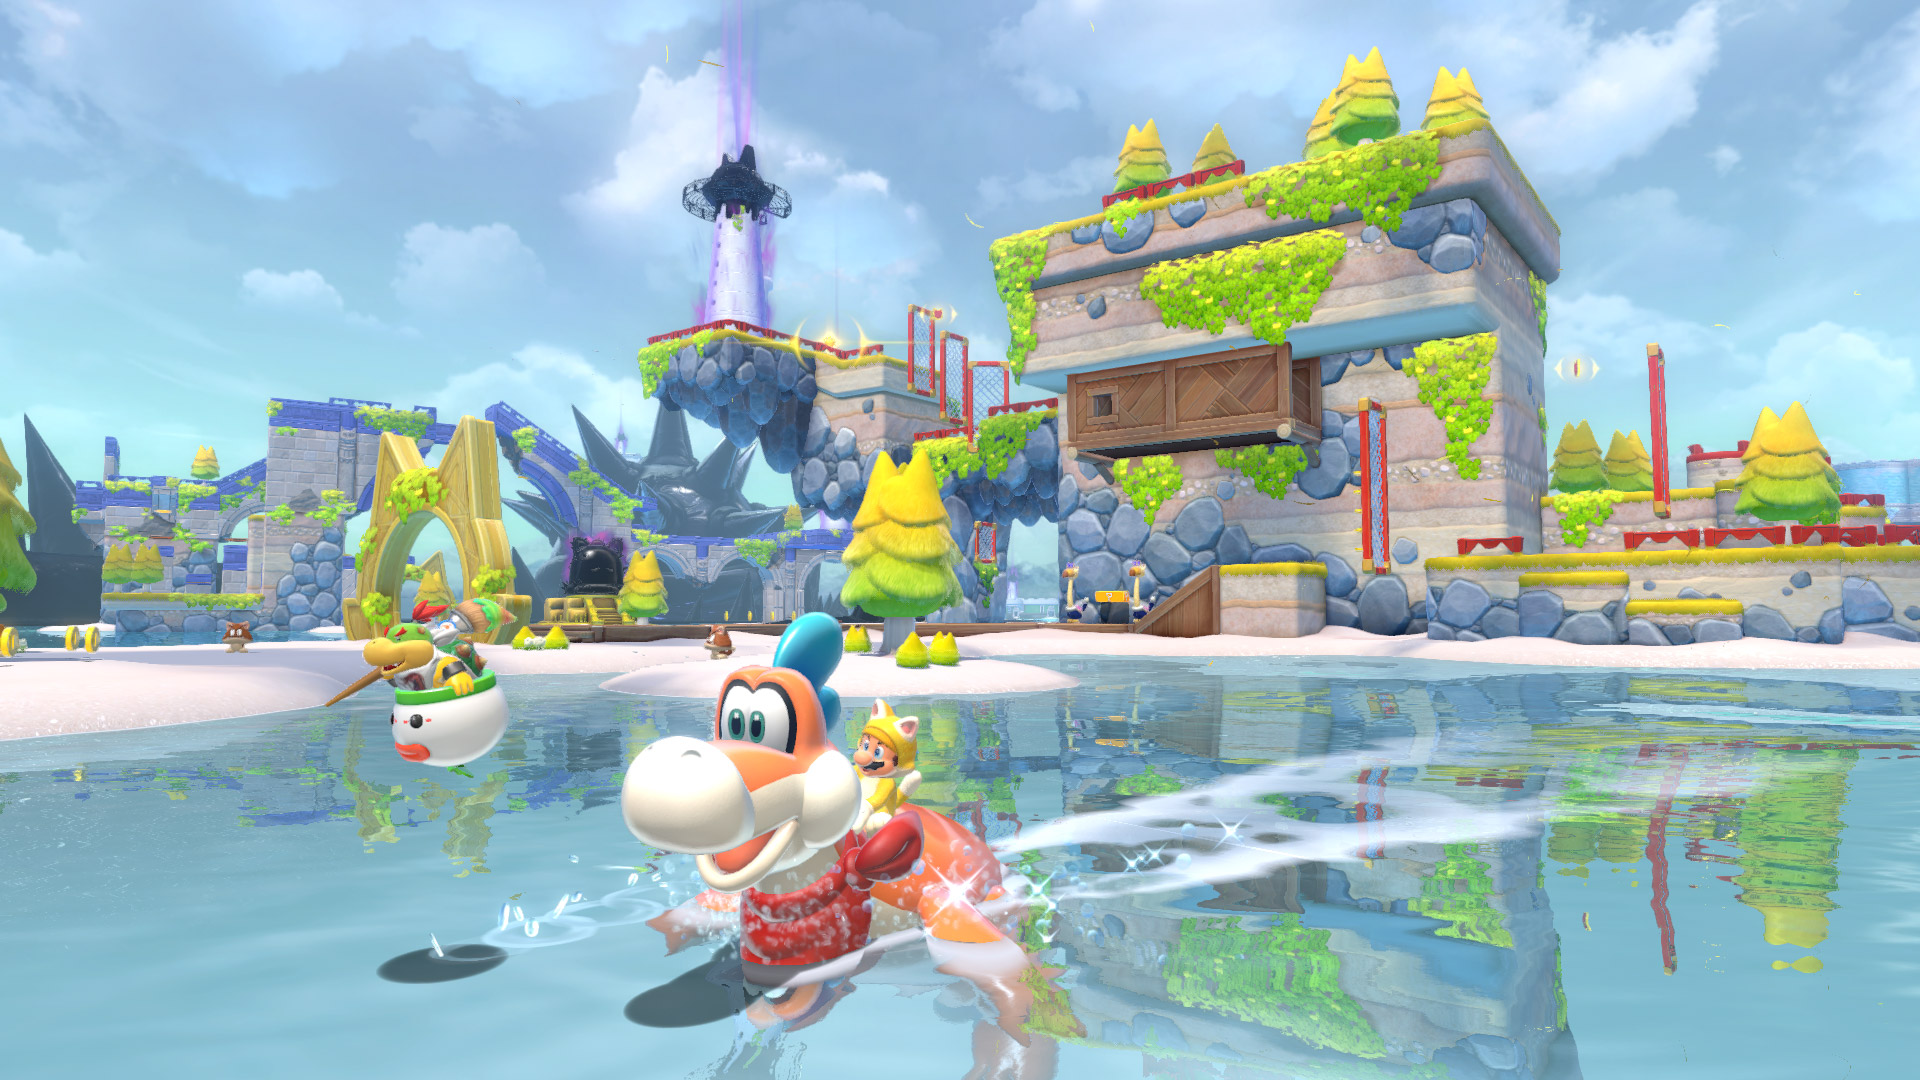 'Bowser's Fury' Drops Mario into an Open World and It's Spectacular